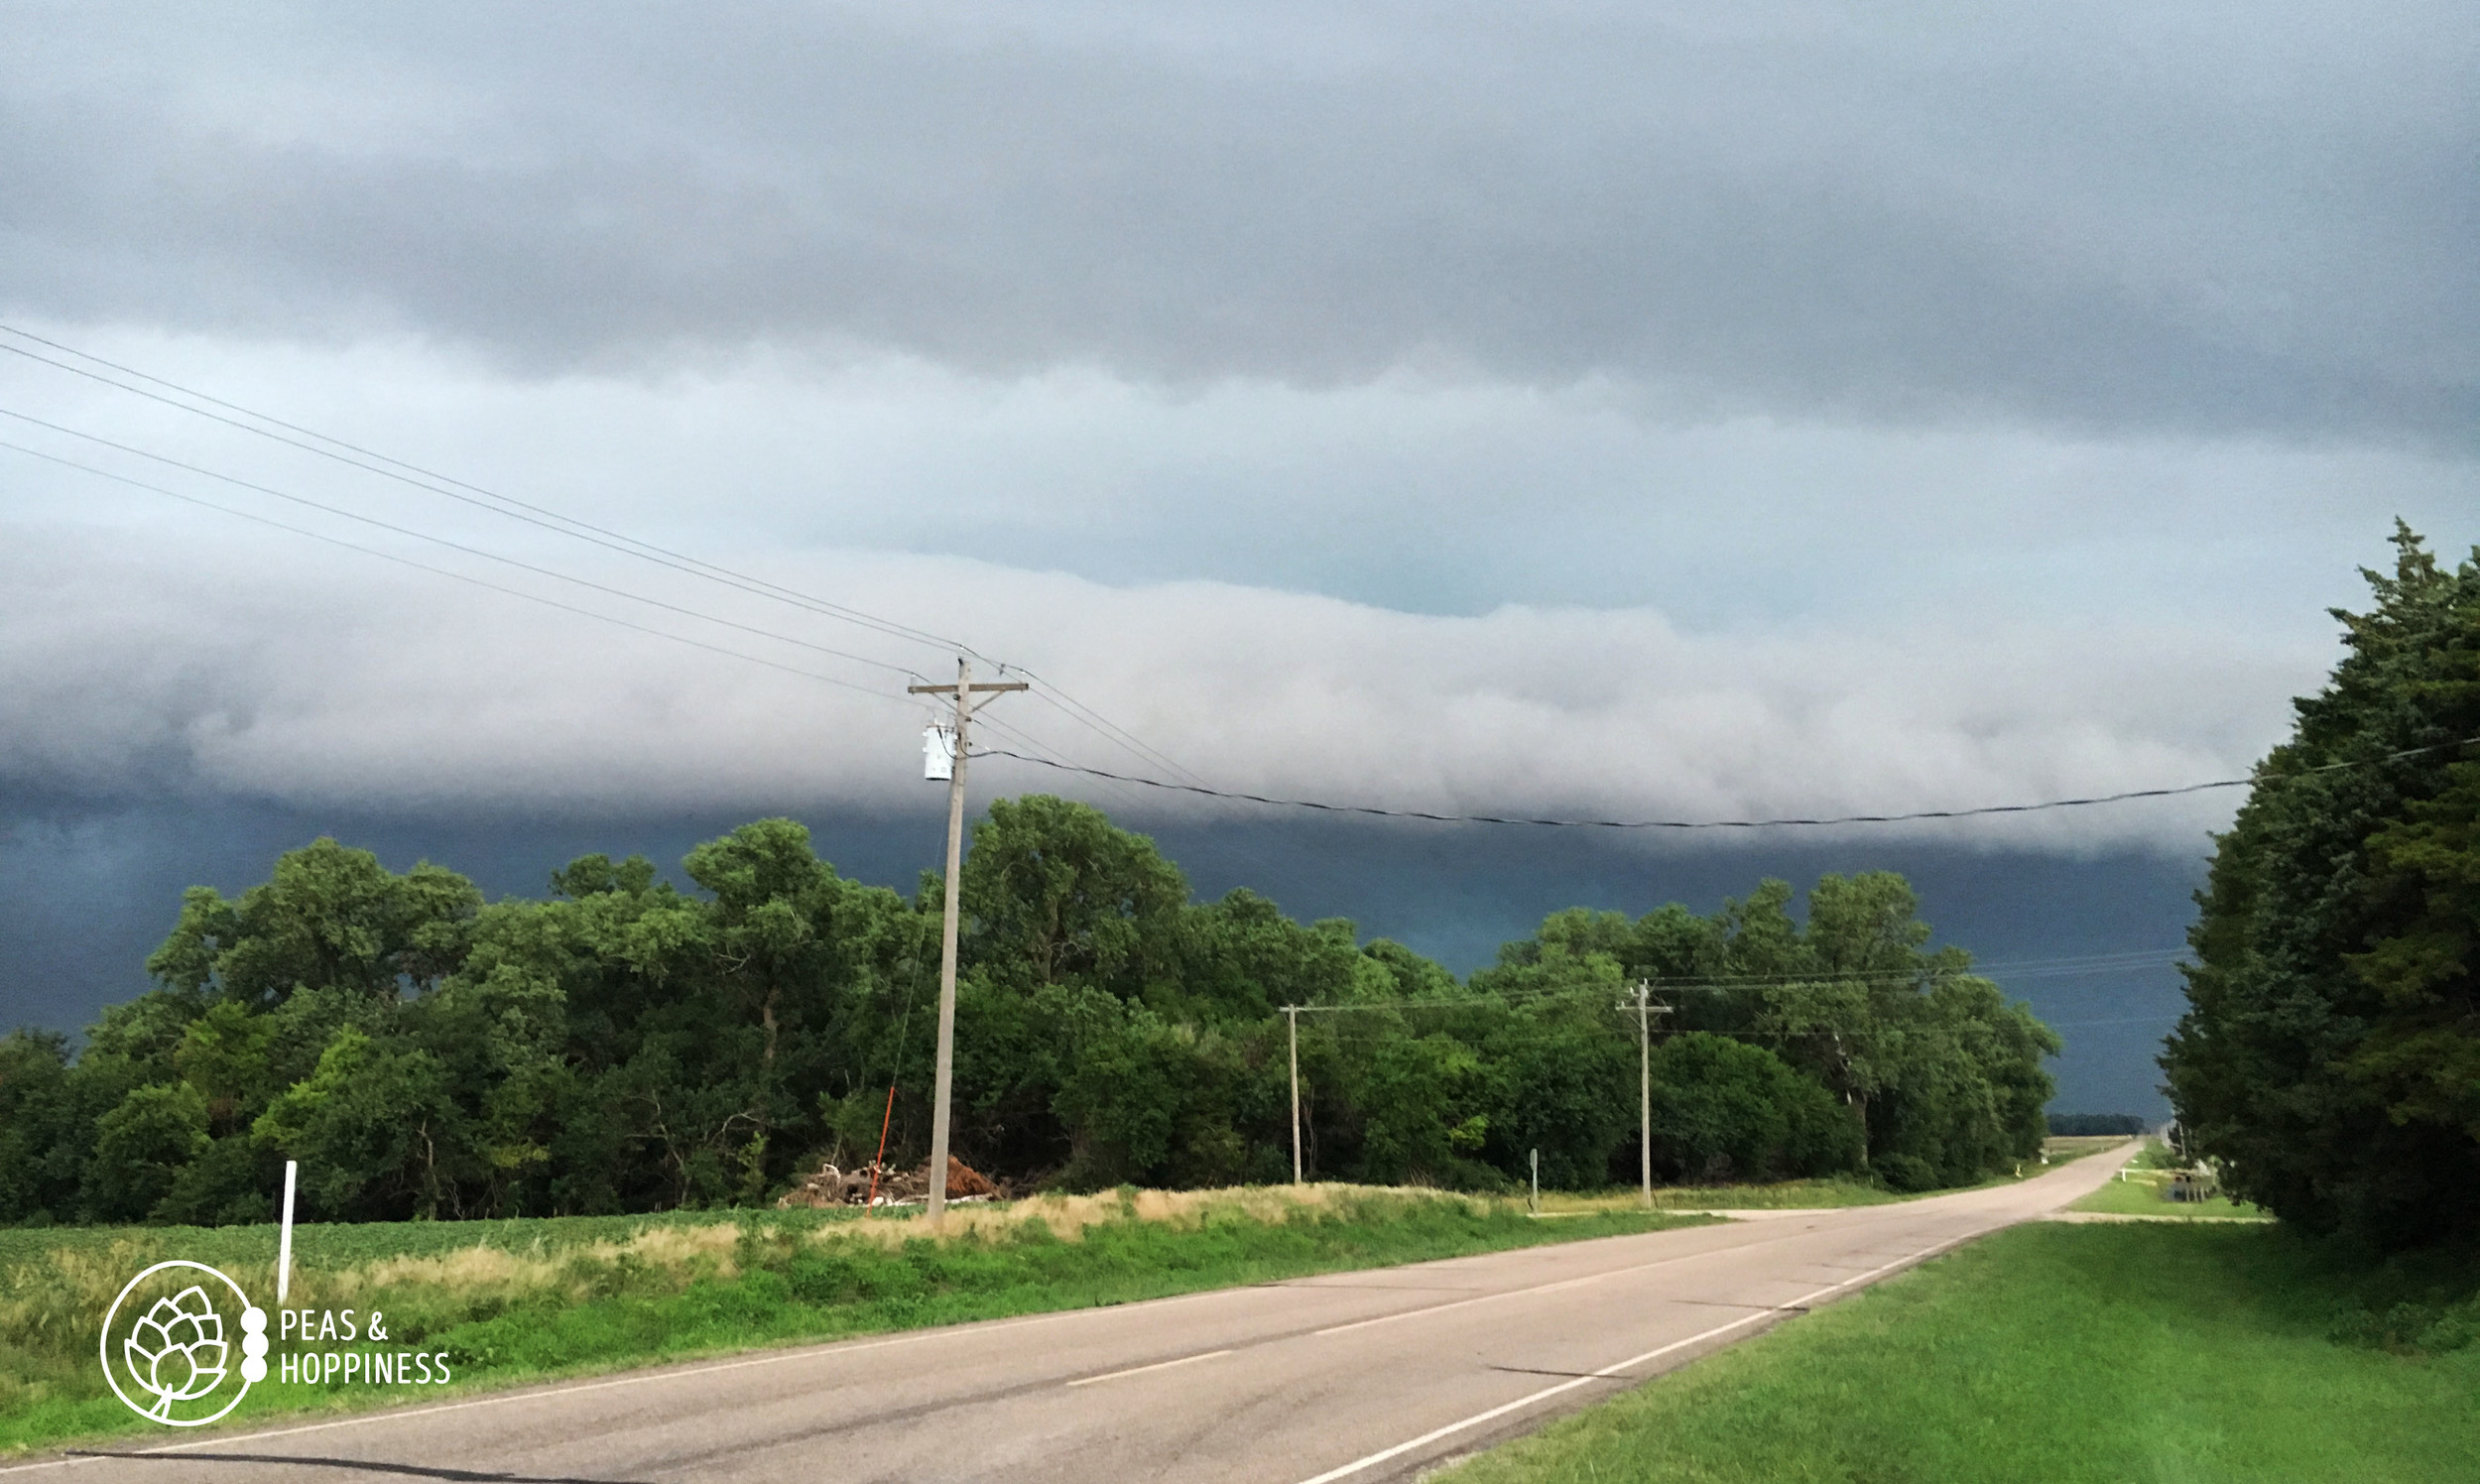 Storm clouds rolling in; the tornado's path was to the north and so missed us. Whew!